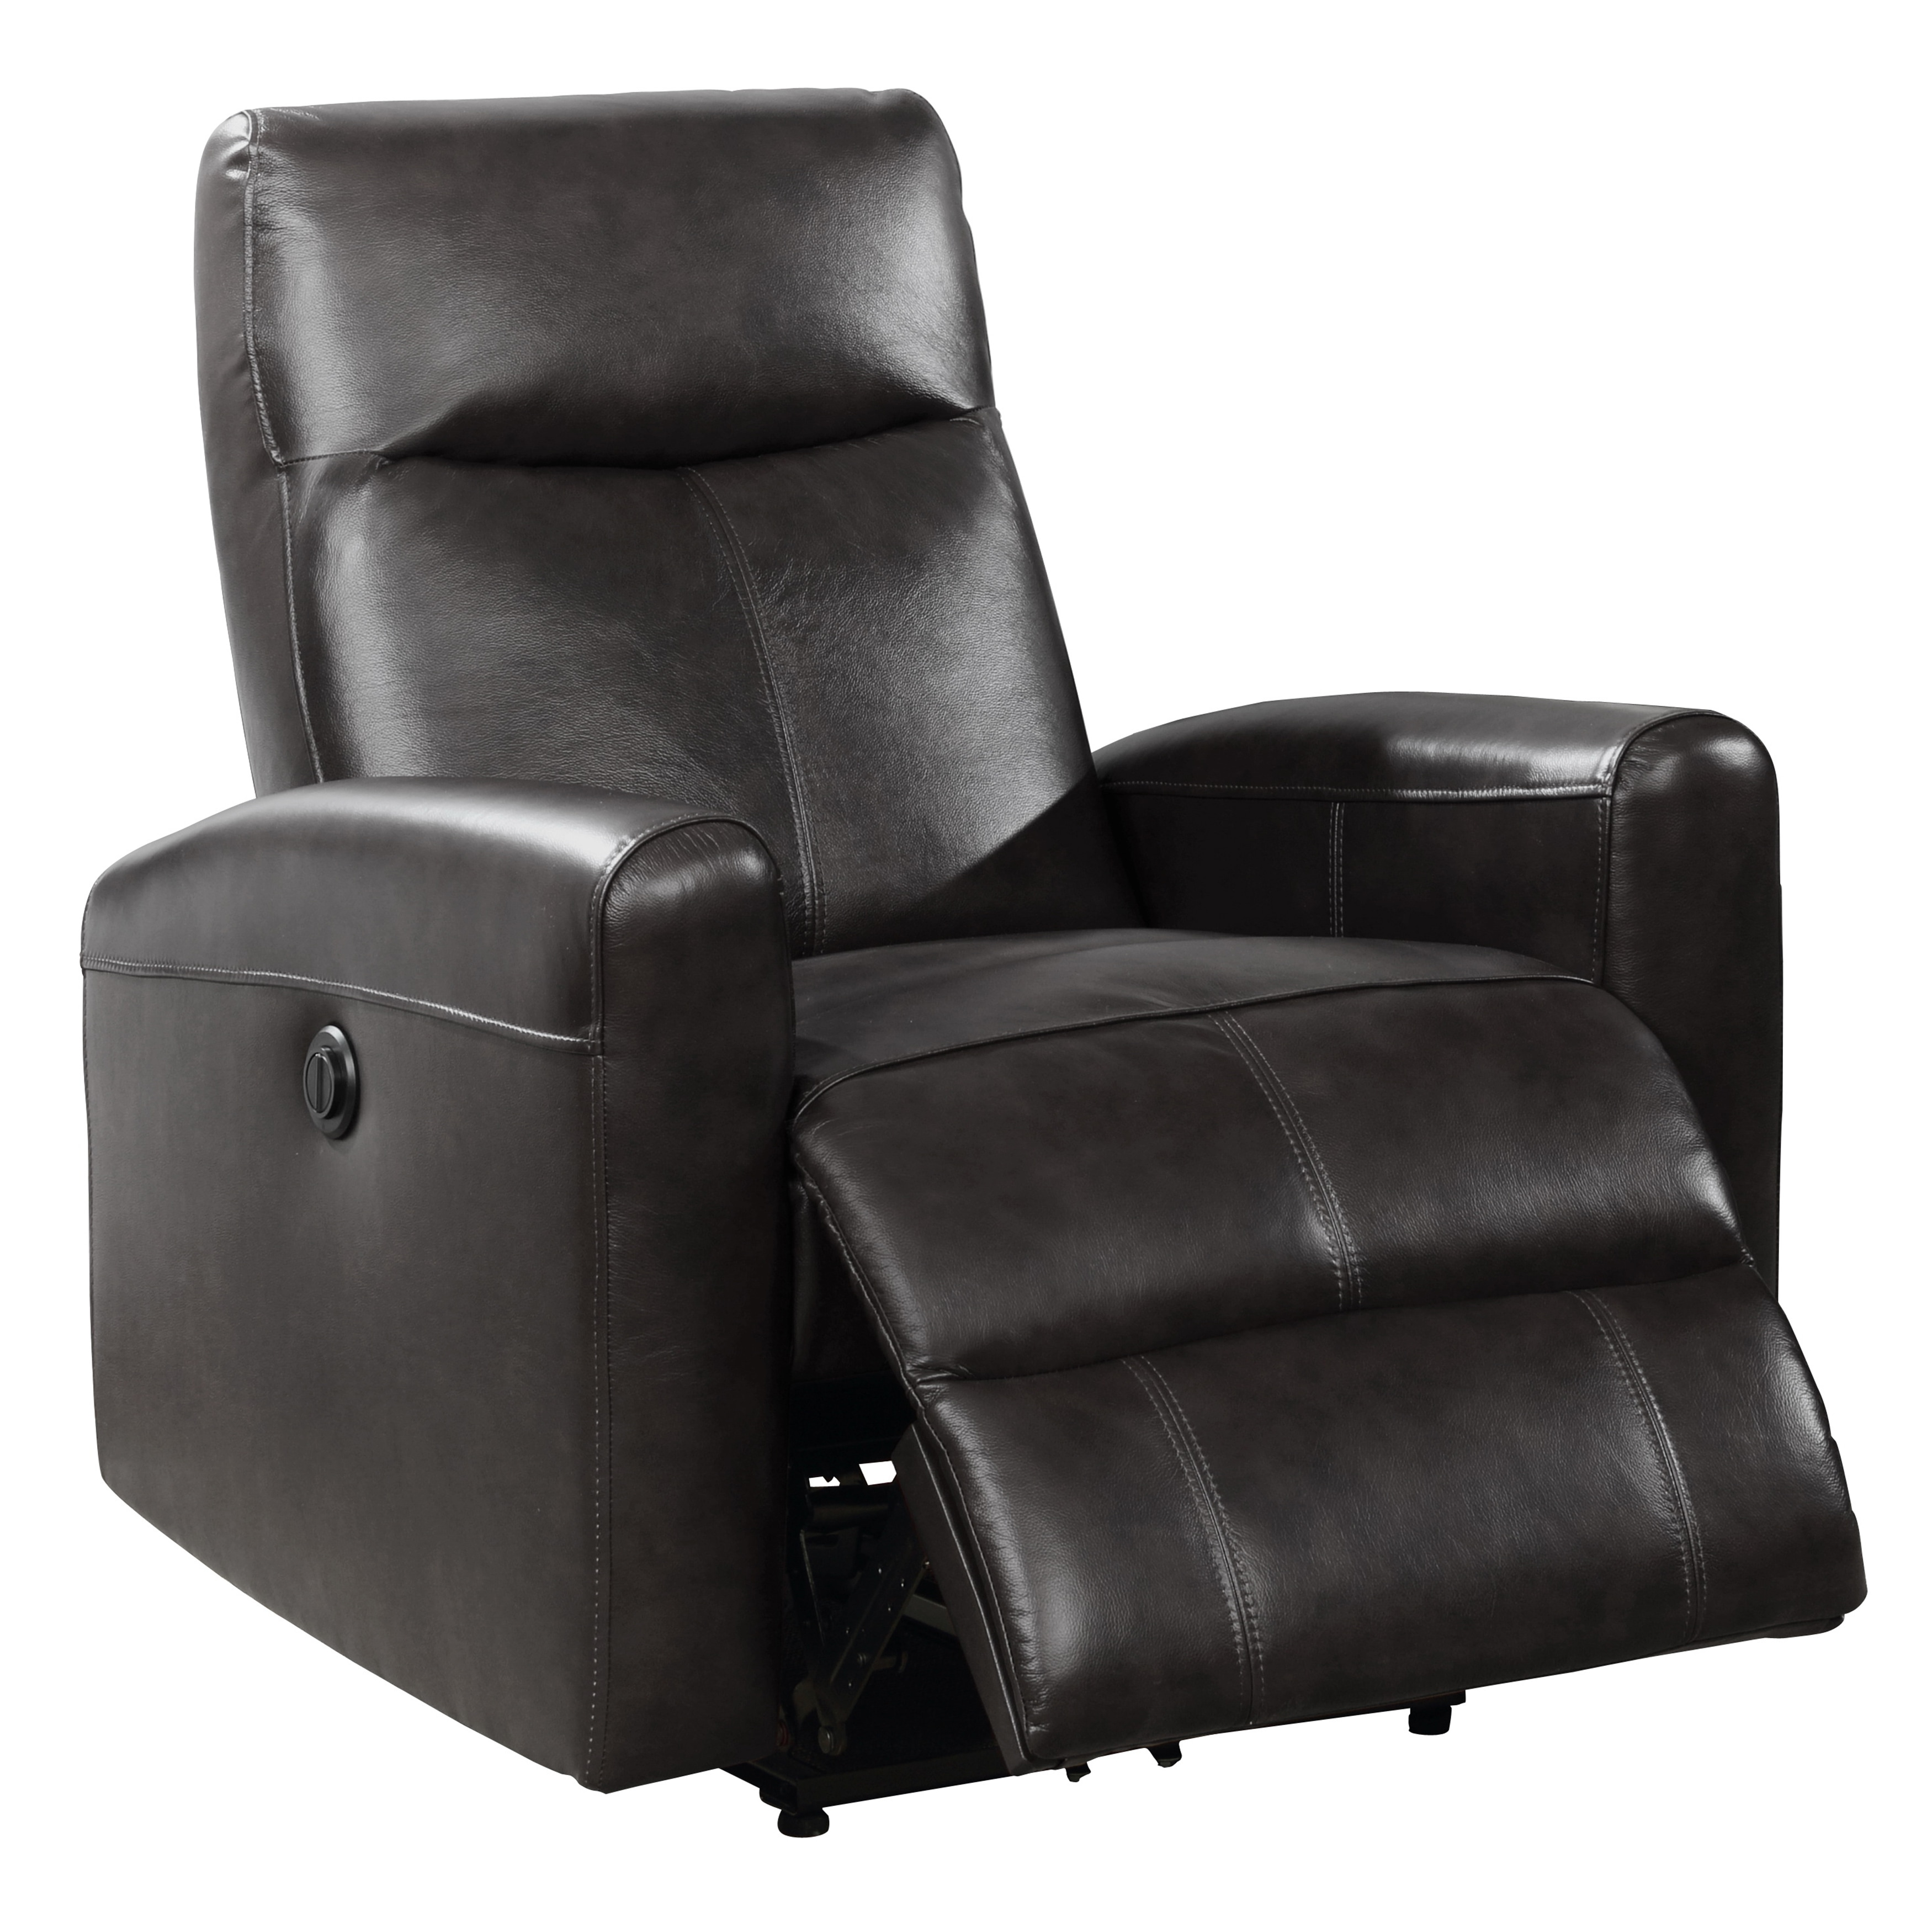 Electric Recliner Leather Chairs Eli Collection Contemporary Leather Upholstered Living Room Electric Recliner Power Chair